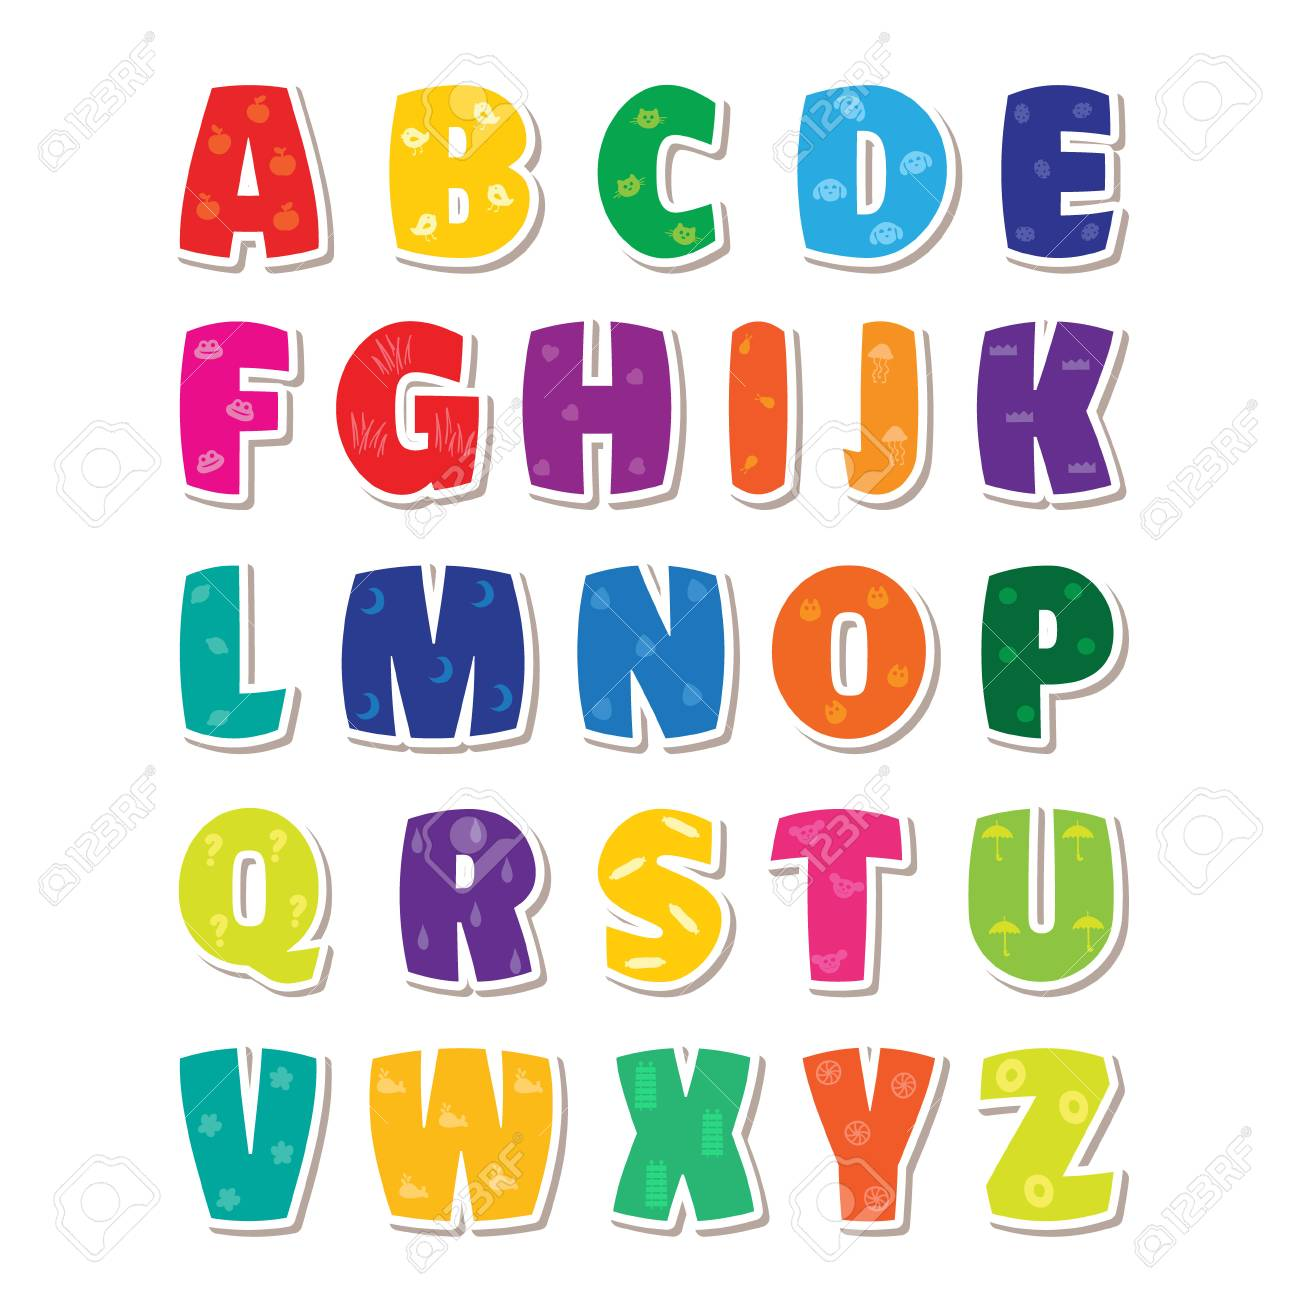 Cute Funny Childish Alphabet Vector Font Illustration Stock